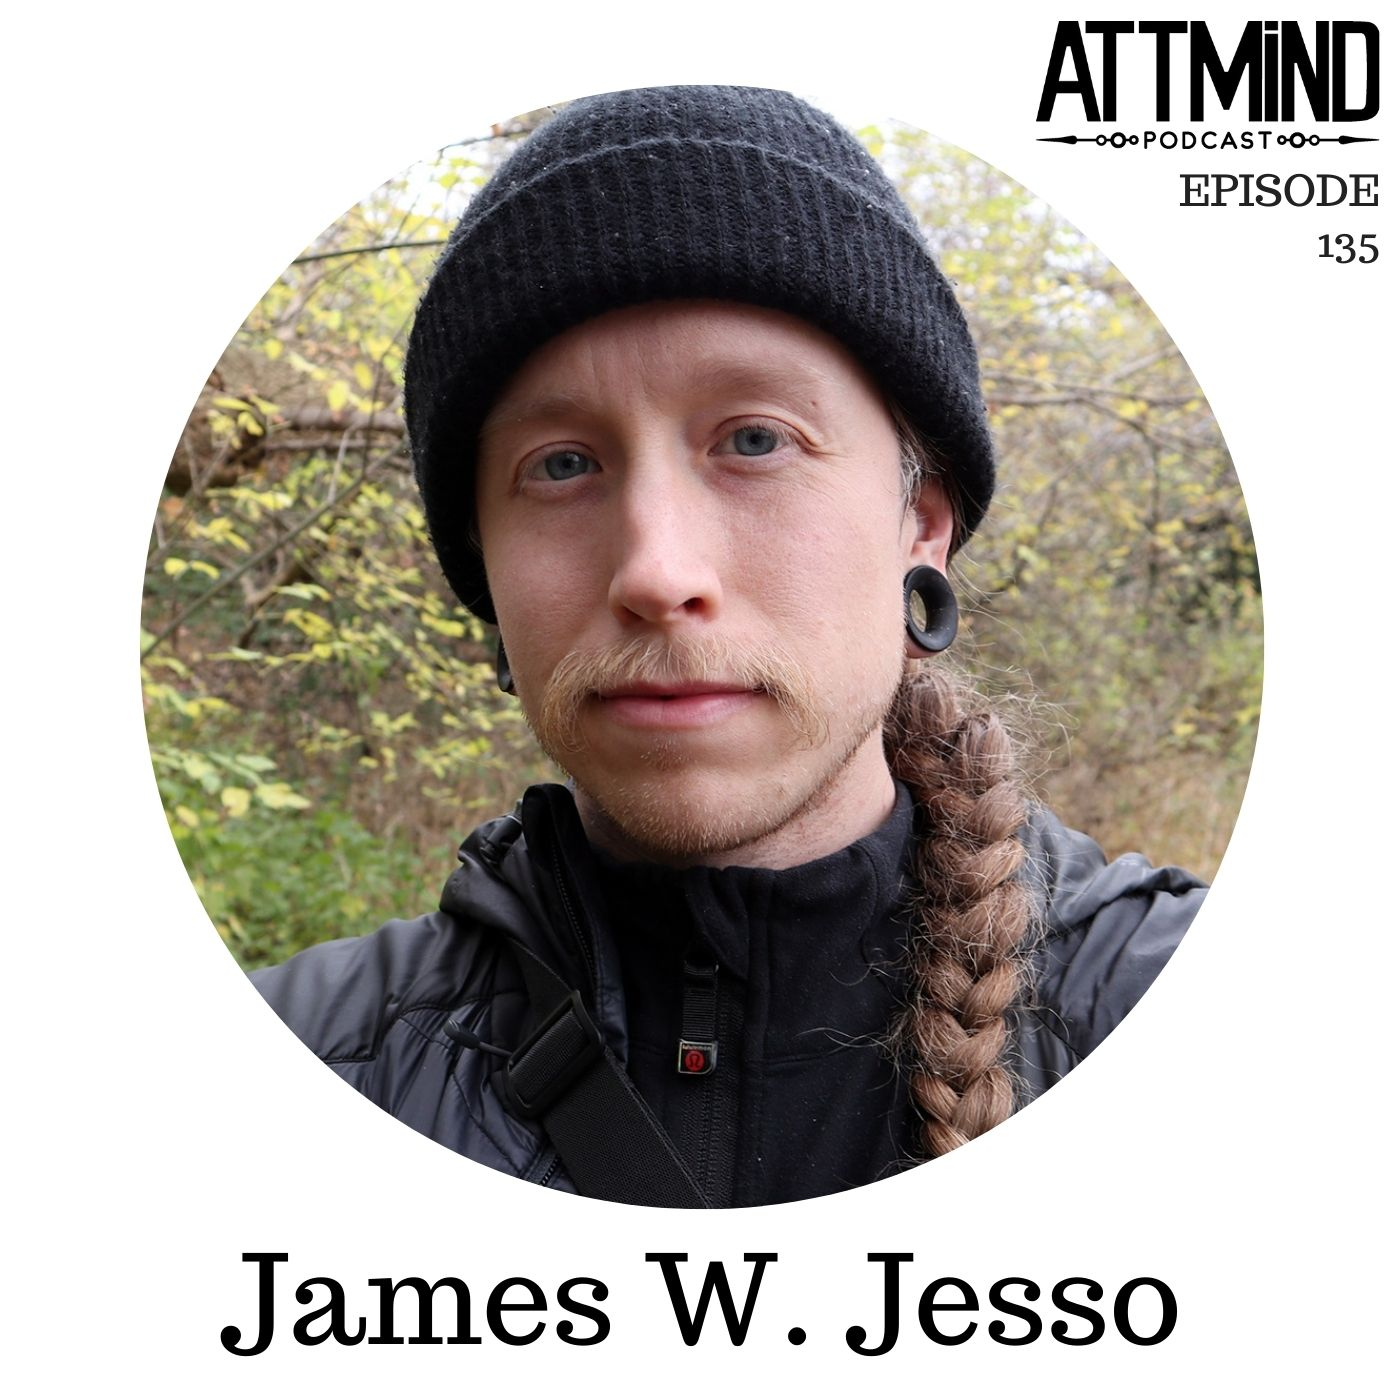 Psilocybin And The Cultivation Of Compassion | James W. Jesso ~ ATTMind 135